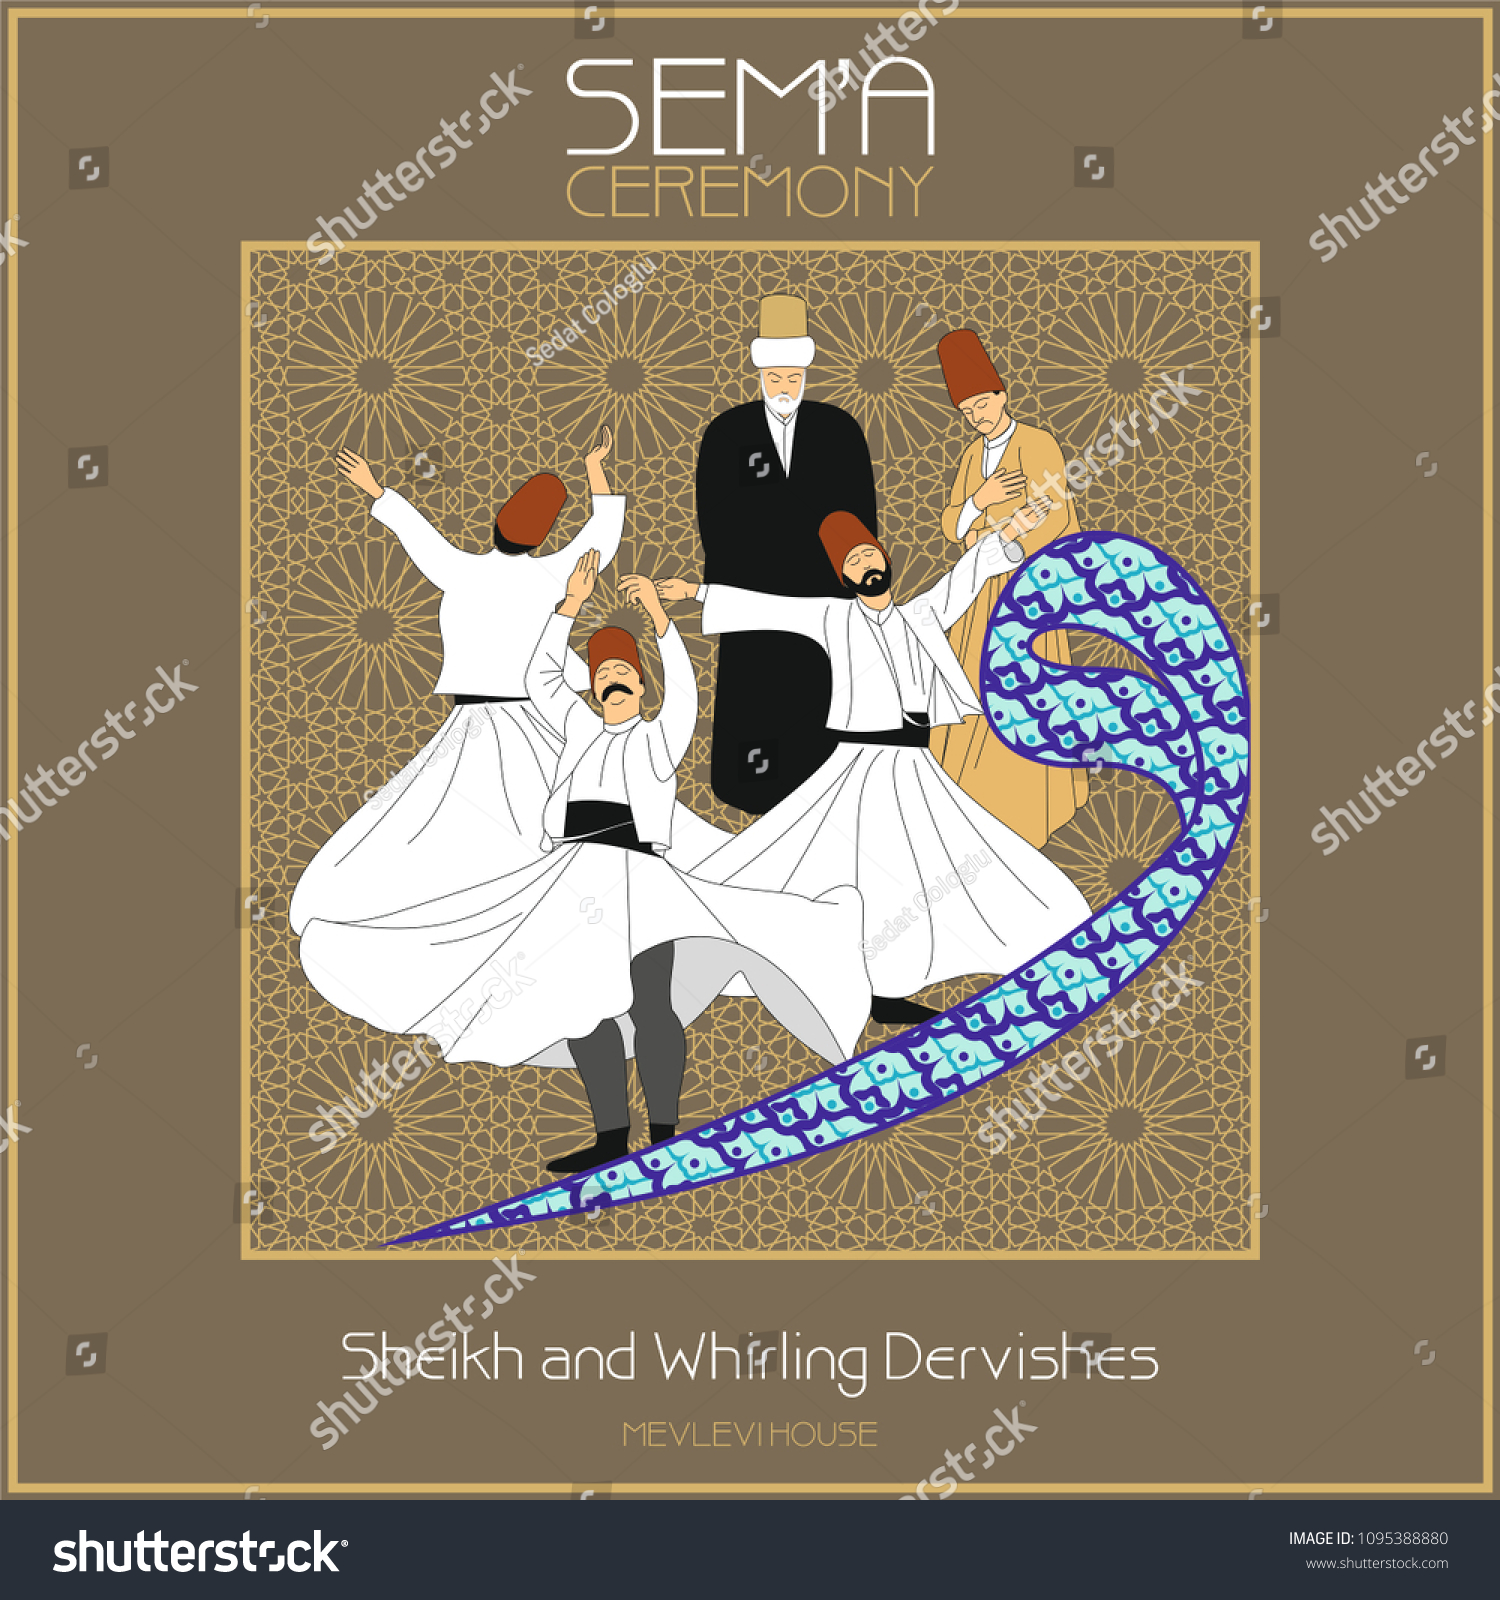 stock-vector-sema-is-a-ritual-of-mevlevi-belief-mevlevihane-is-where-these-ceremonies-took-place-this-graphic-1095388880